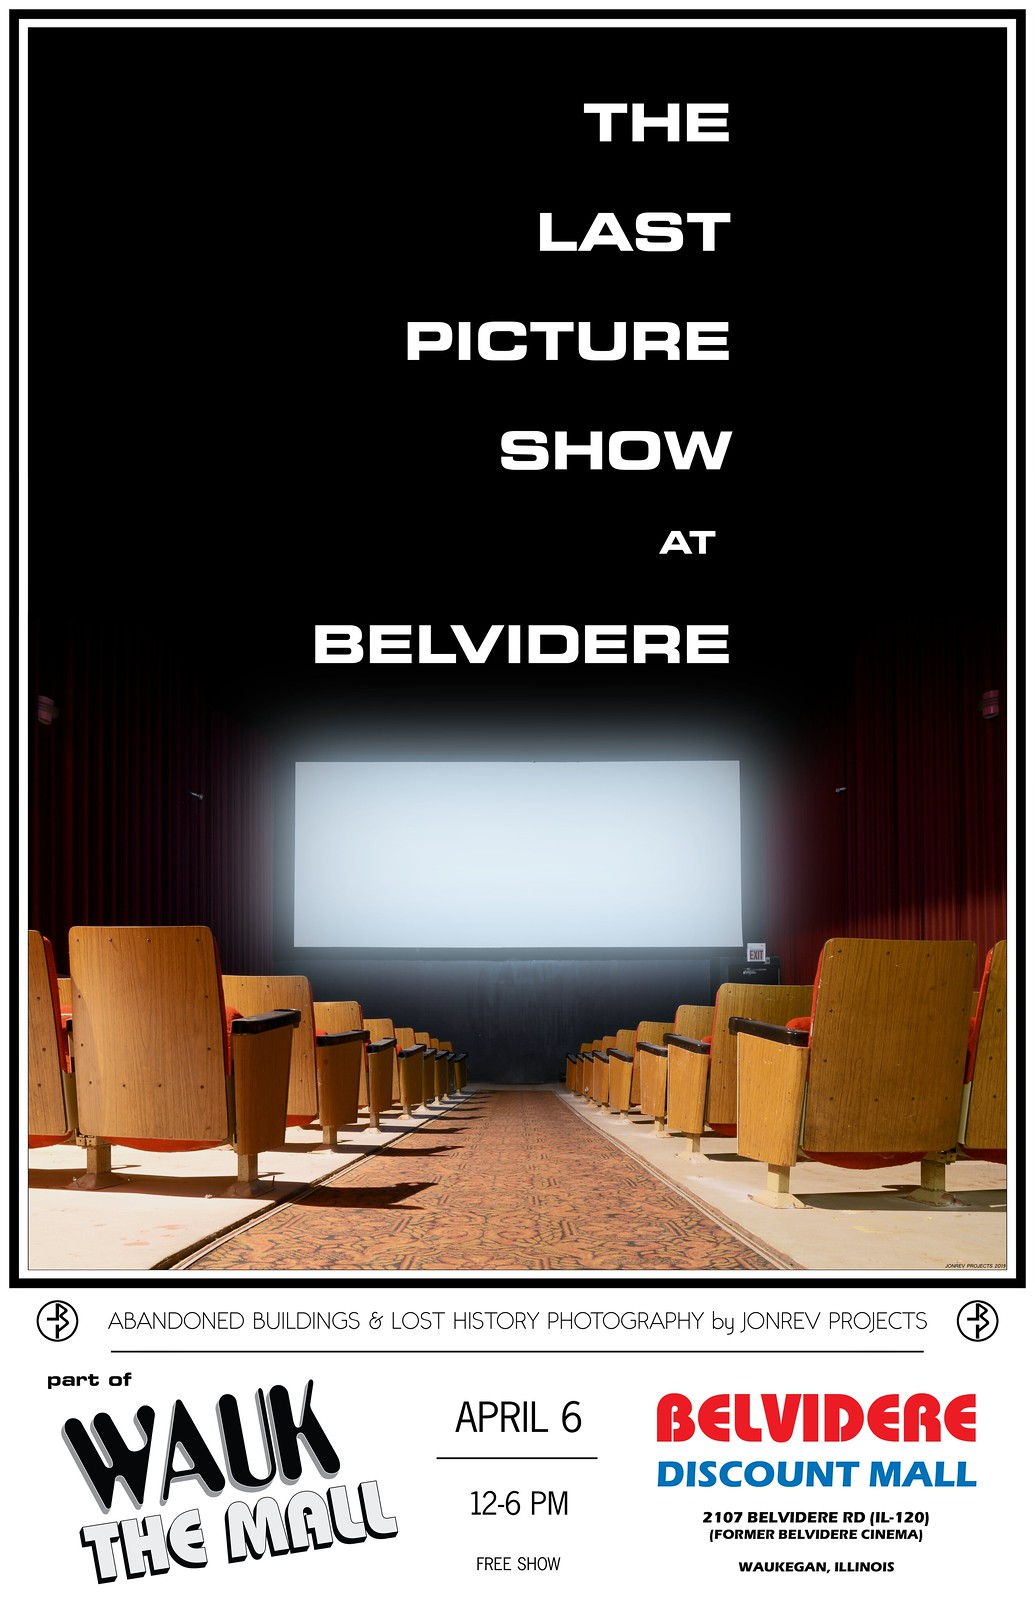 THE LAST PICTURE SHOW at BELVIDERE